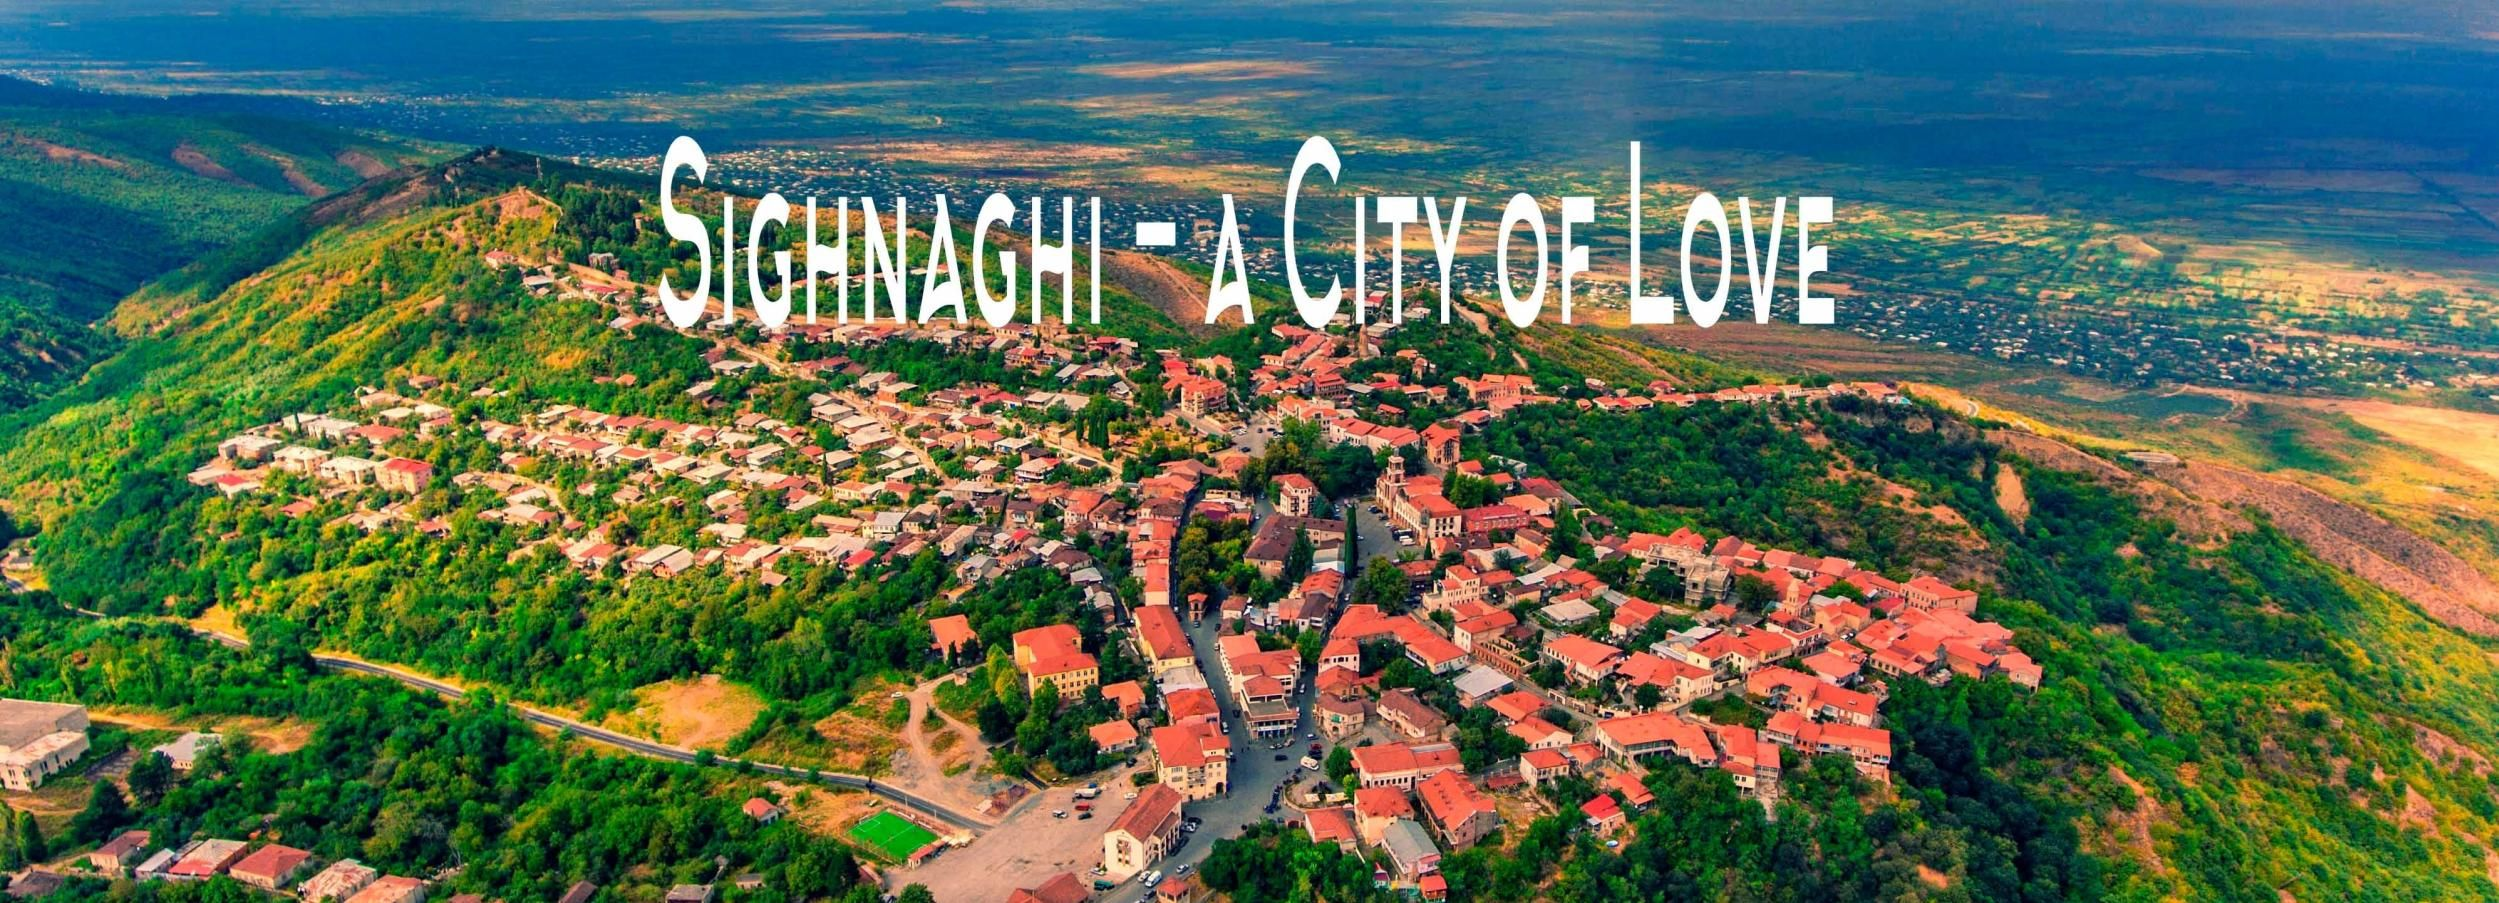 From Tbilisi: Sighnaghi and Bodbe Full Day Tour